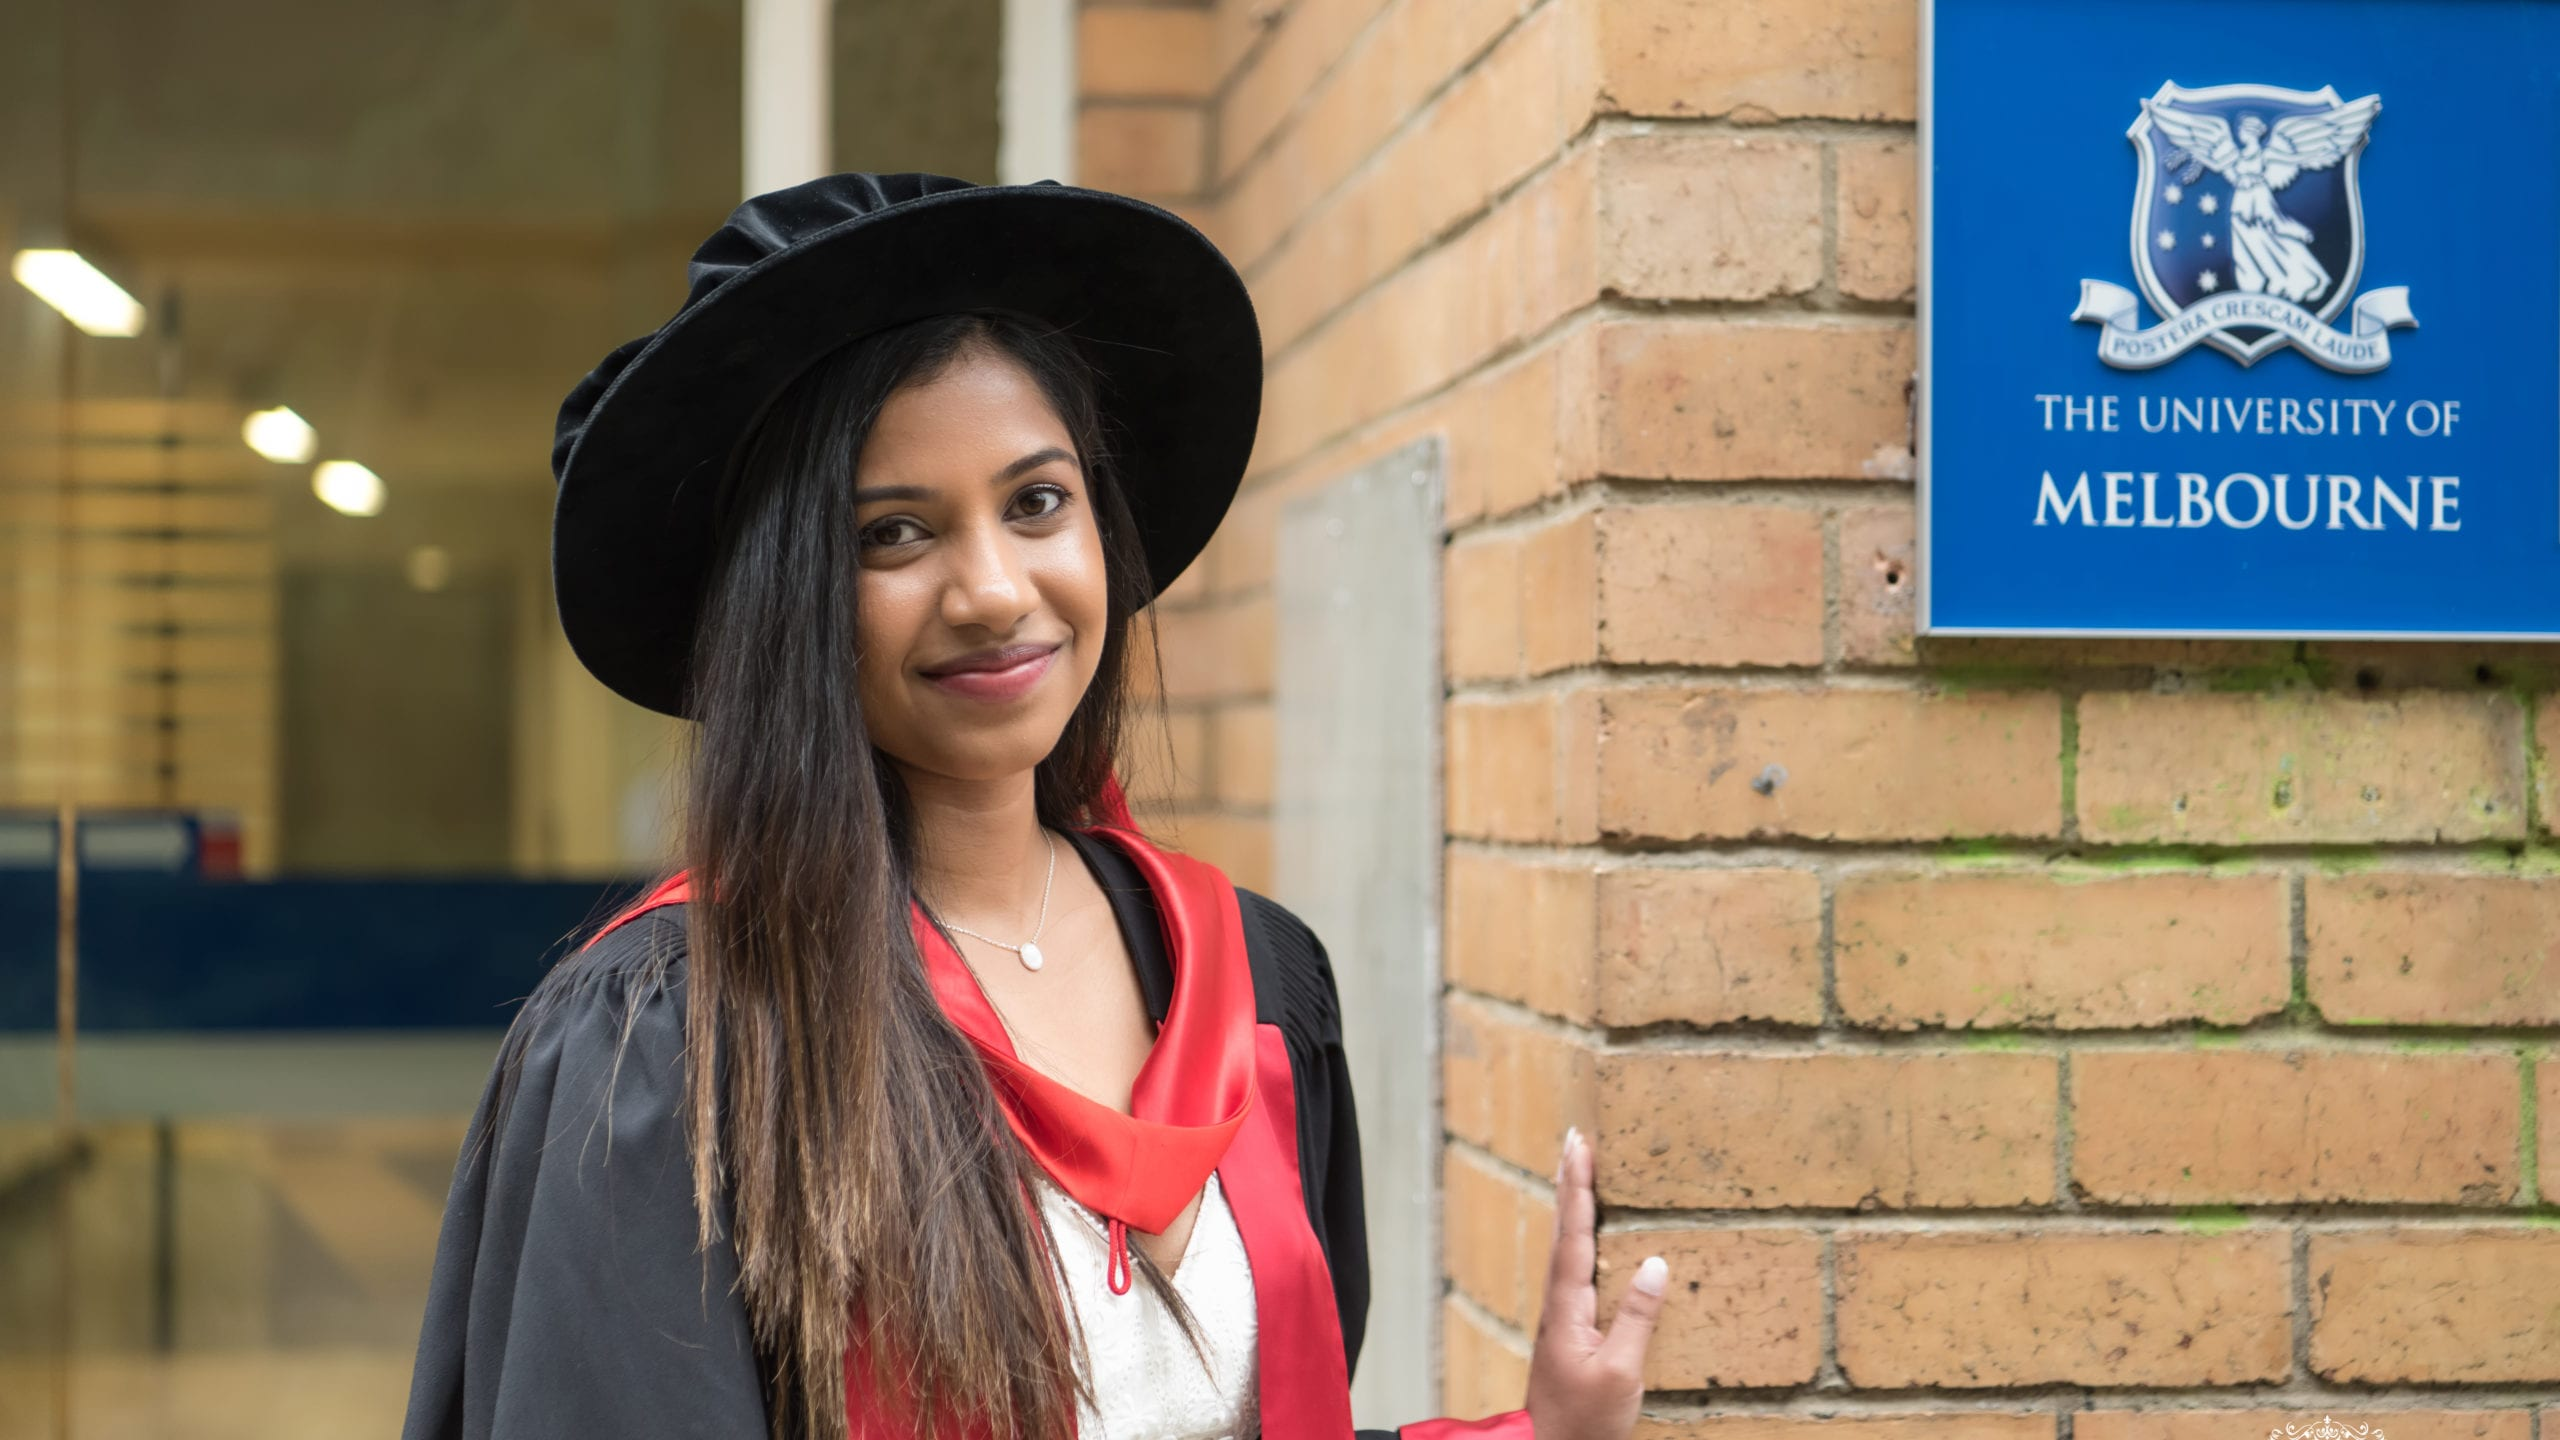 Amanthi R Thudugalage - Telstra Intern to Networks Engineer